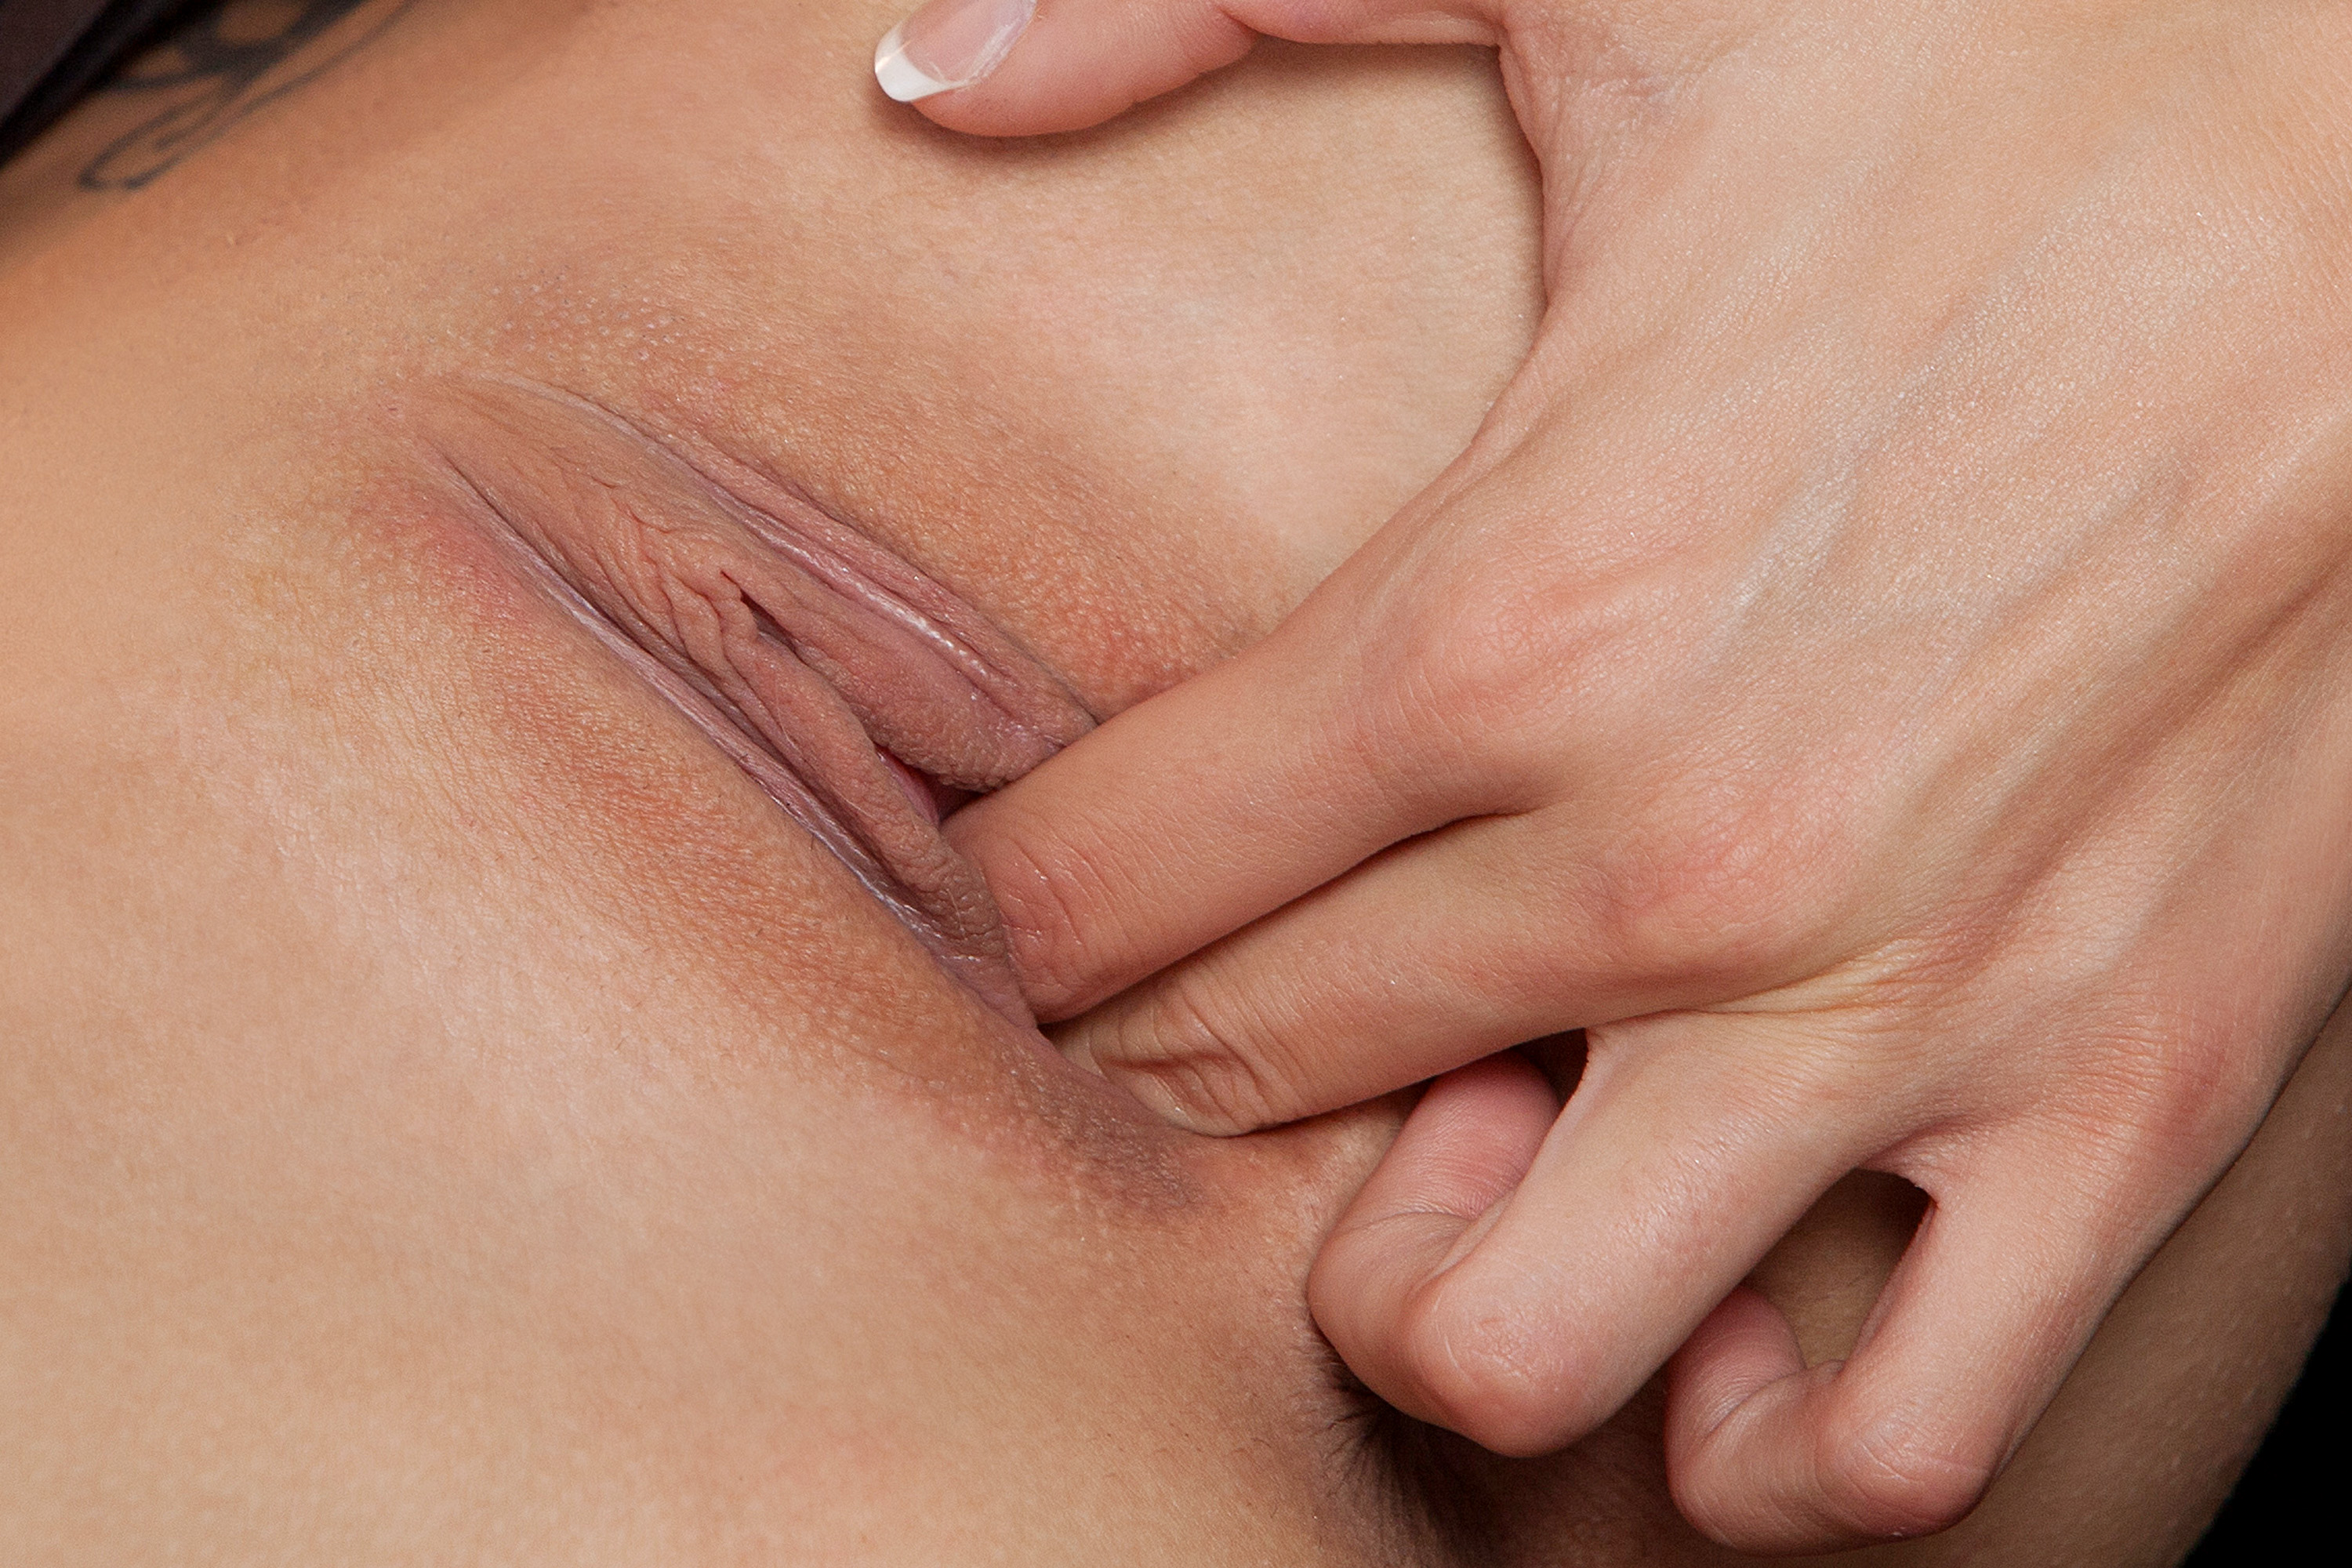 fingered-pussy-sexy-colorado-amateur-sex